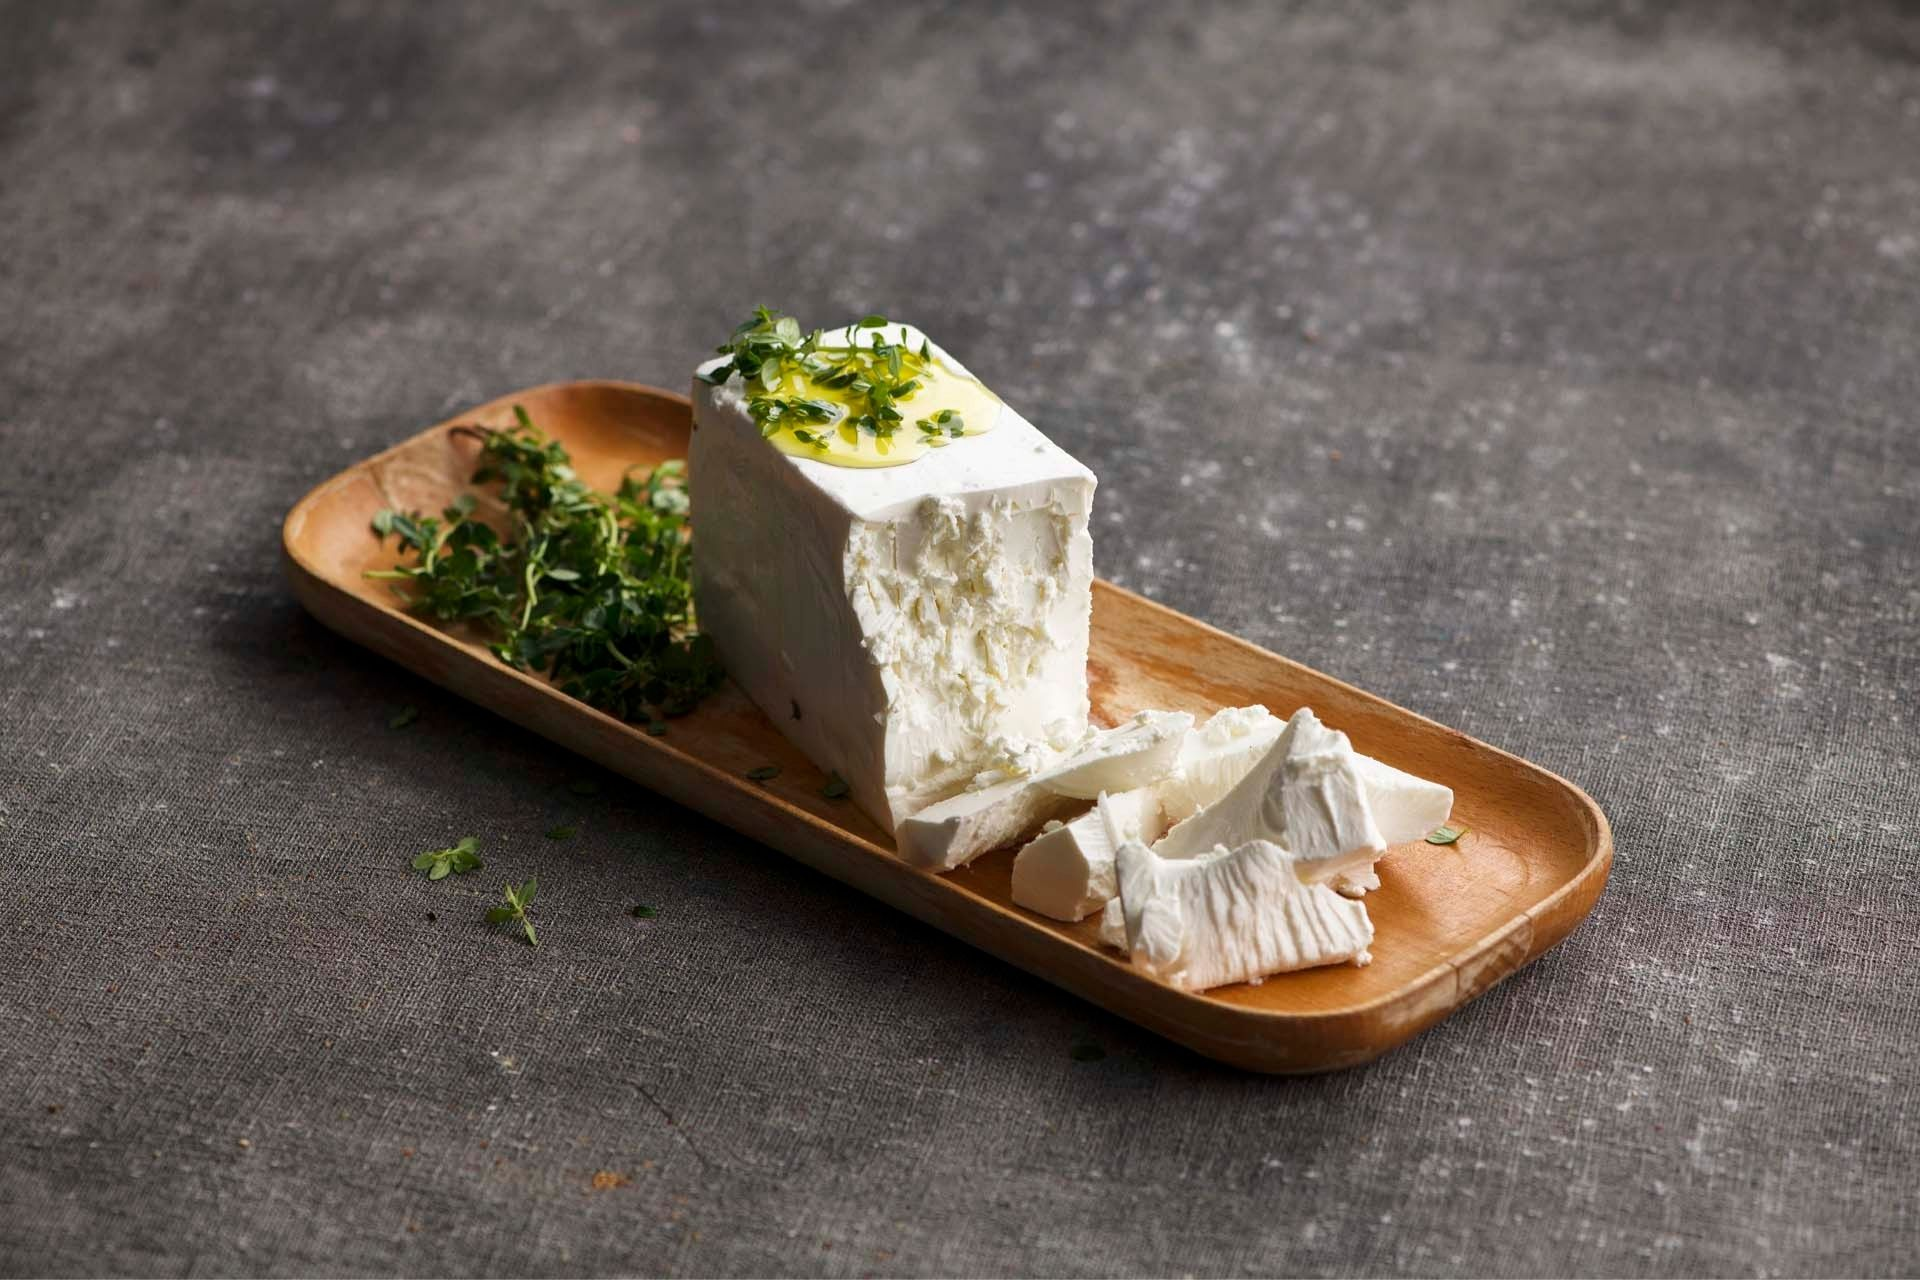 Fetta Cheese Wholesale from Fresco Cheese - Buy Feta Cheese in Bulk Landing Page Featured Image